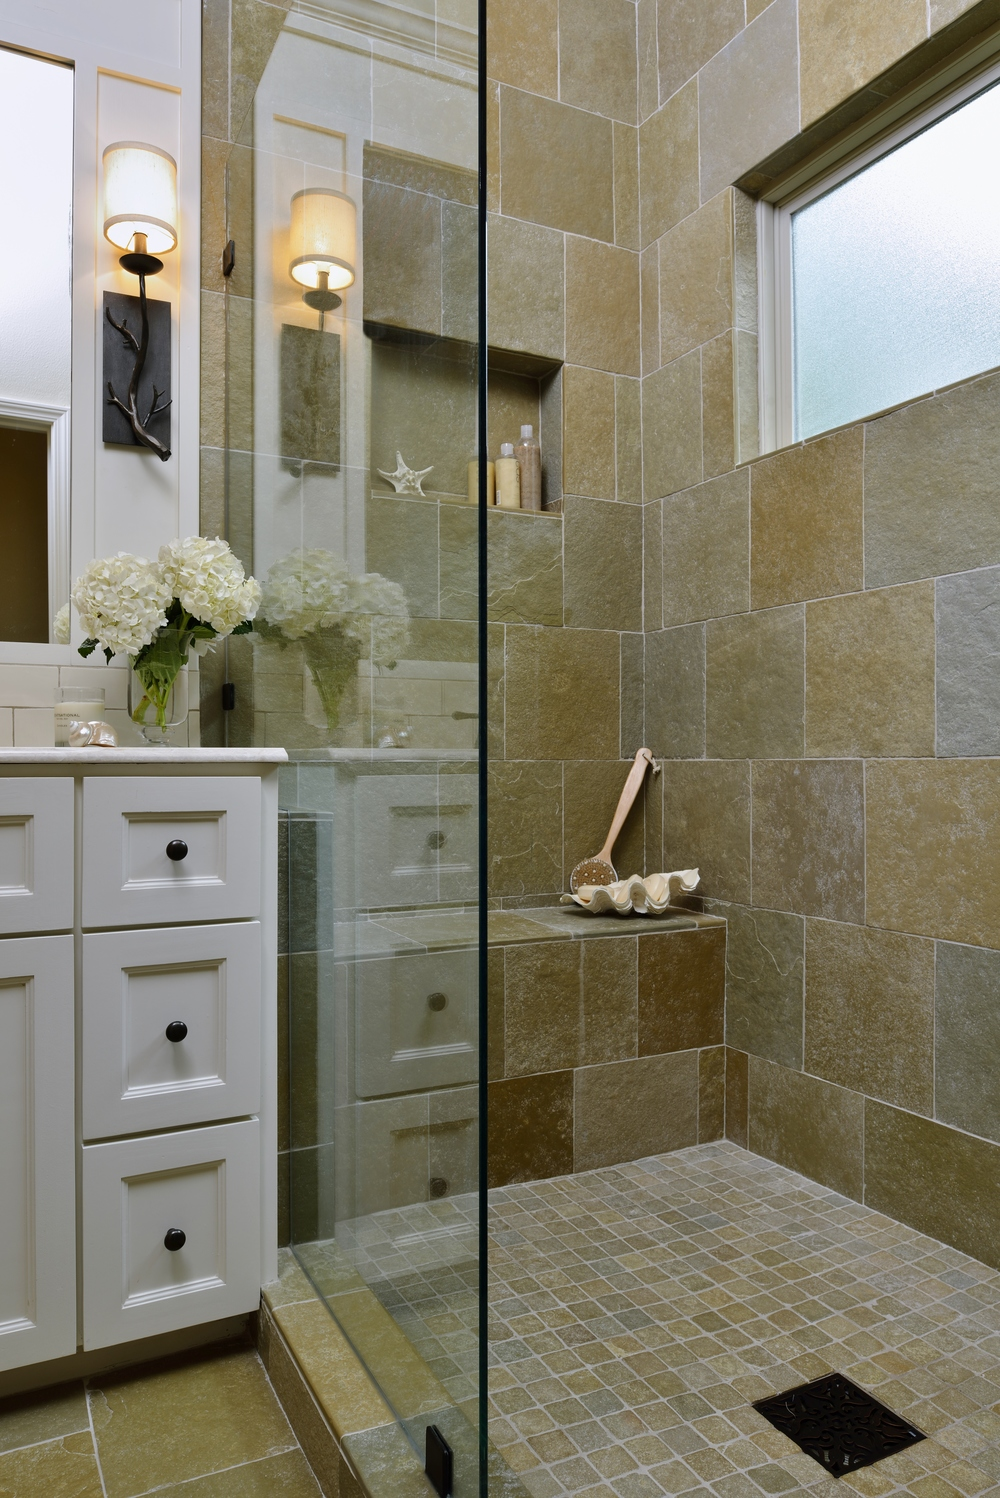 Interior Designer: Carla Aston | Garden inspired bathroom; slate floor; shower, shampoo niche / Photographer: Miro Dvorscak